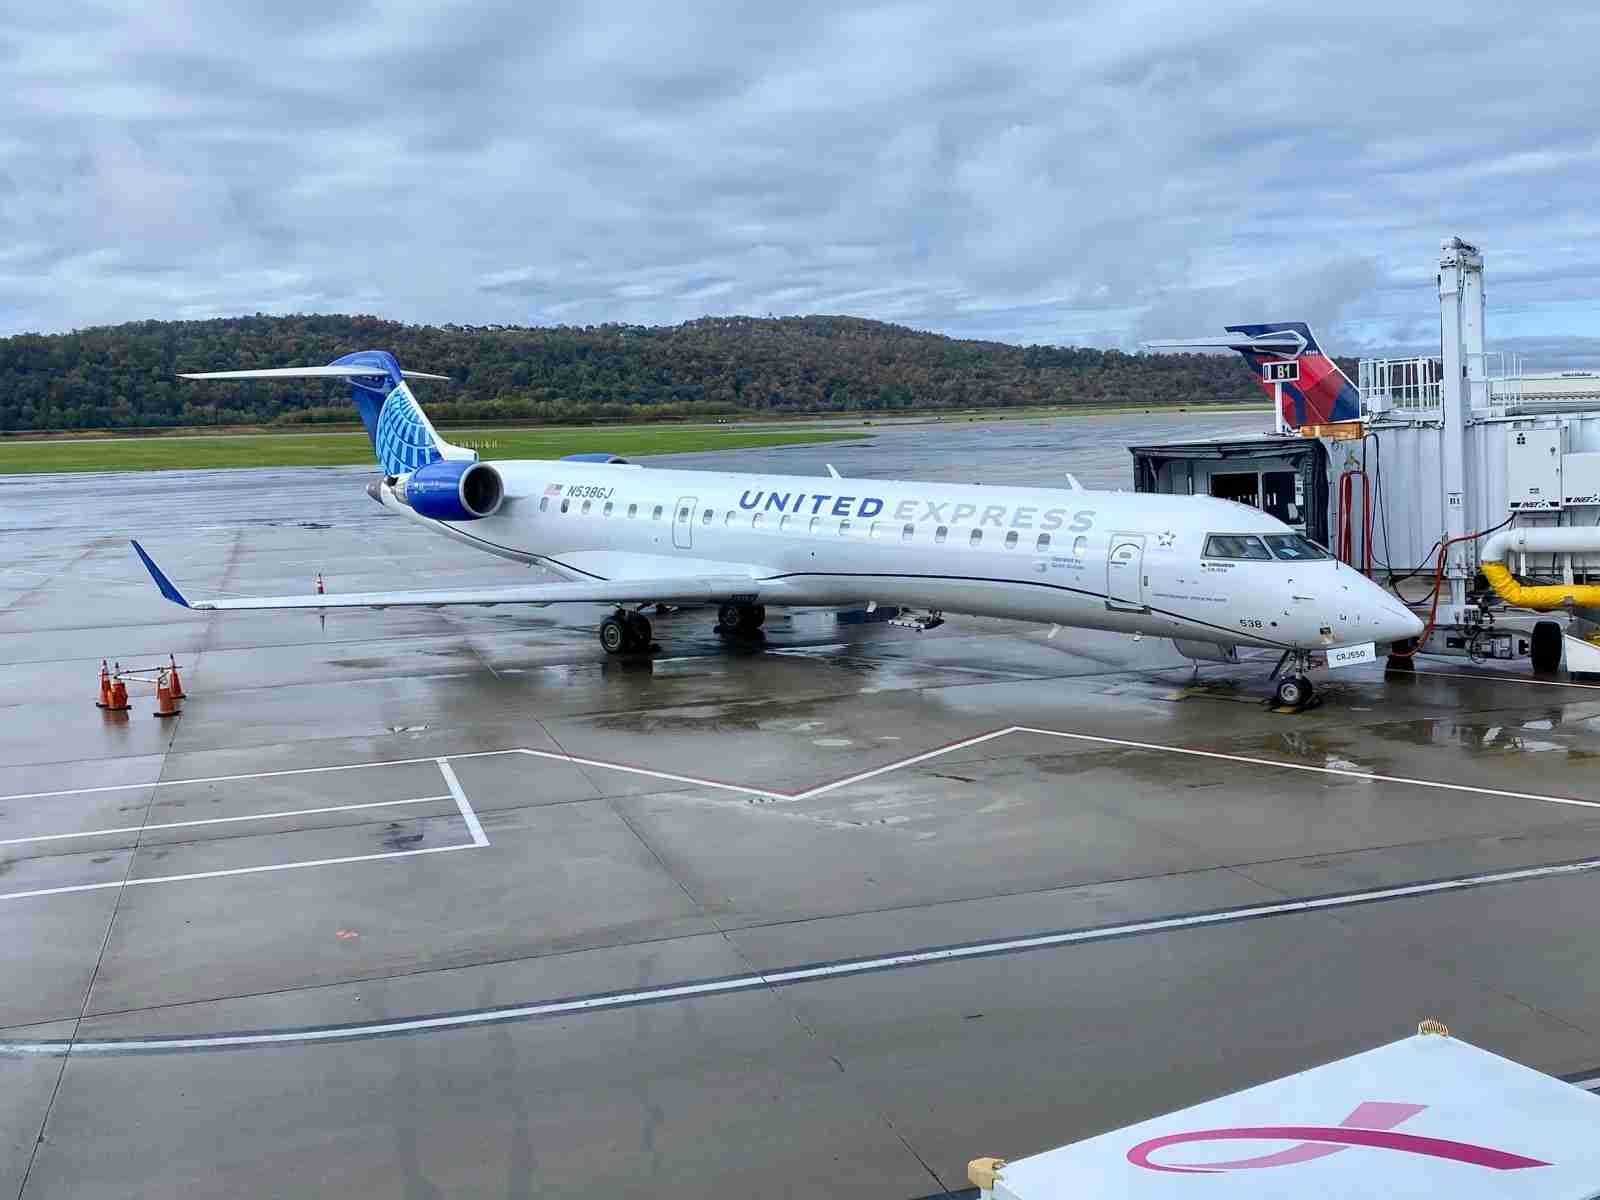 A United Express Bombardier CRJ 550 is seen in Harrisburg, Pennsylvania, after its first flight for the airline. (Photo by Zach Griff/The Points Guy)